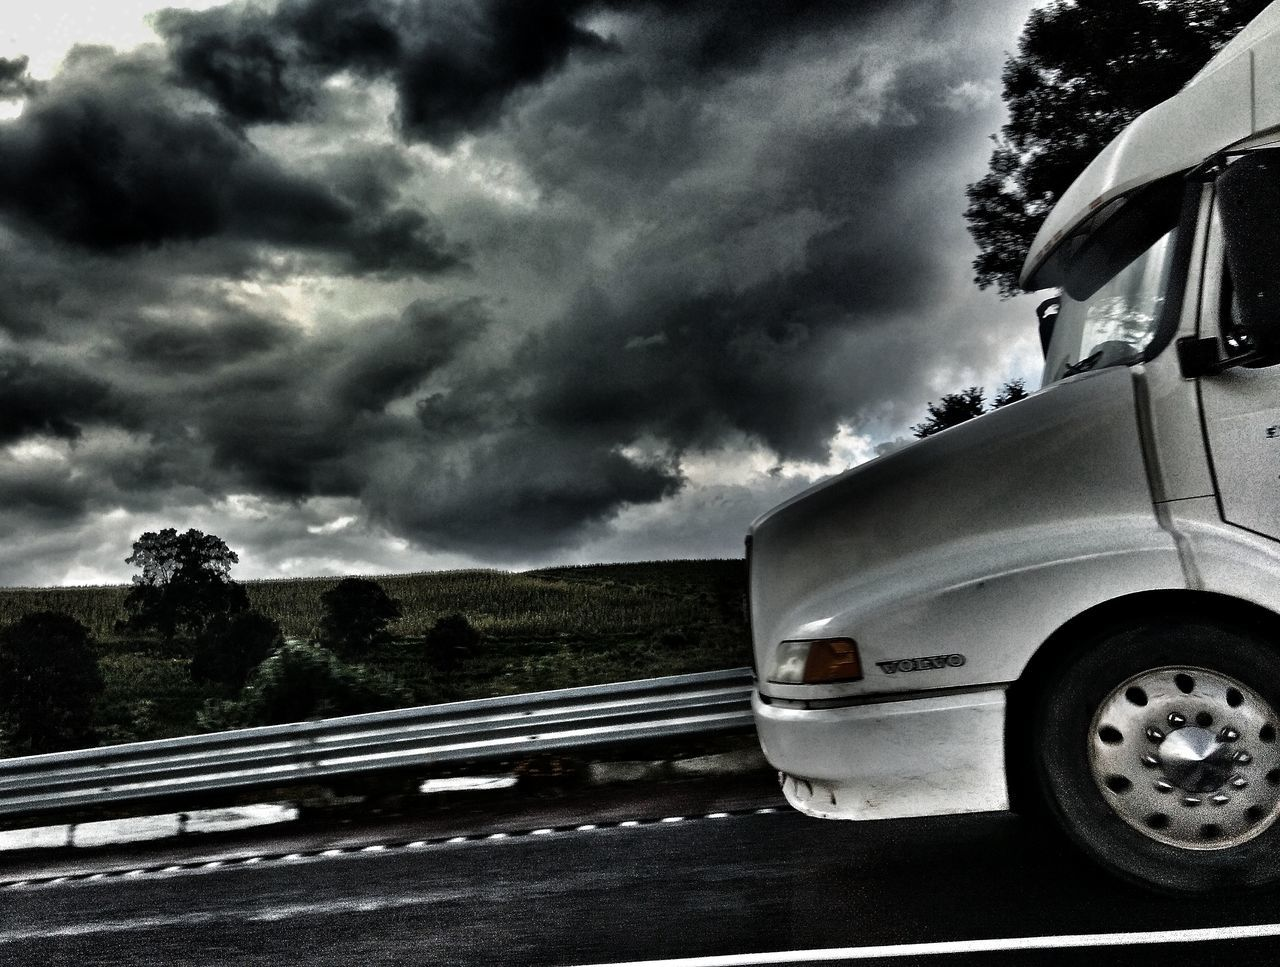 Truck Transportation Road Built Structure Architecture Sky Outdoors Day Cloud - Sky Vehicle Storm Cloud No People Streetphotography Scenics Landscape Morning Light Exterior Ligth And Shadows Dark Filmphotography Talking Photo Road Roadtrip My Point Of View Fast